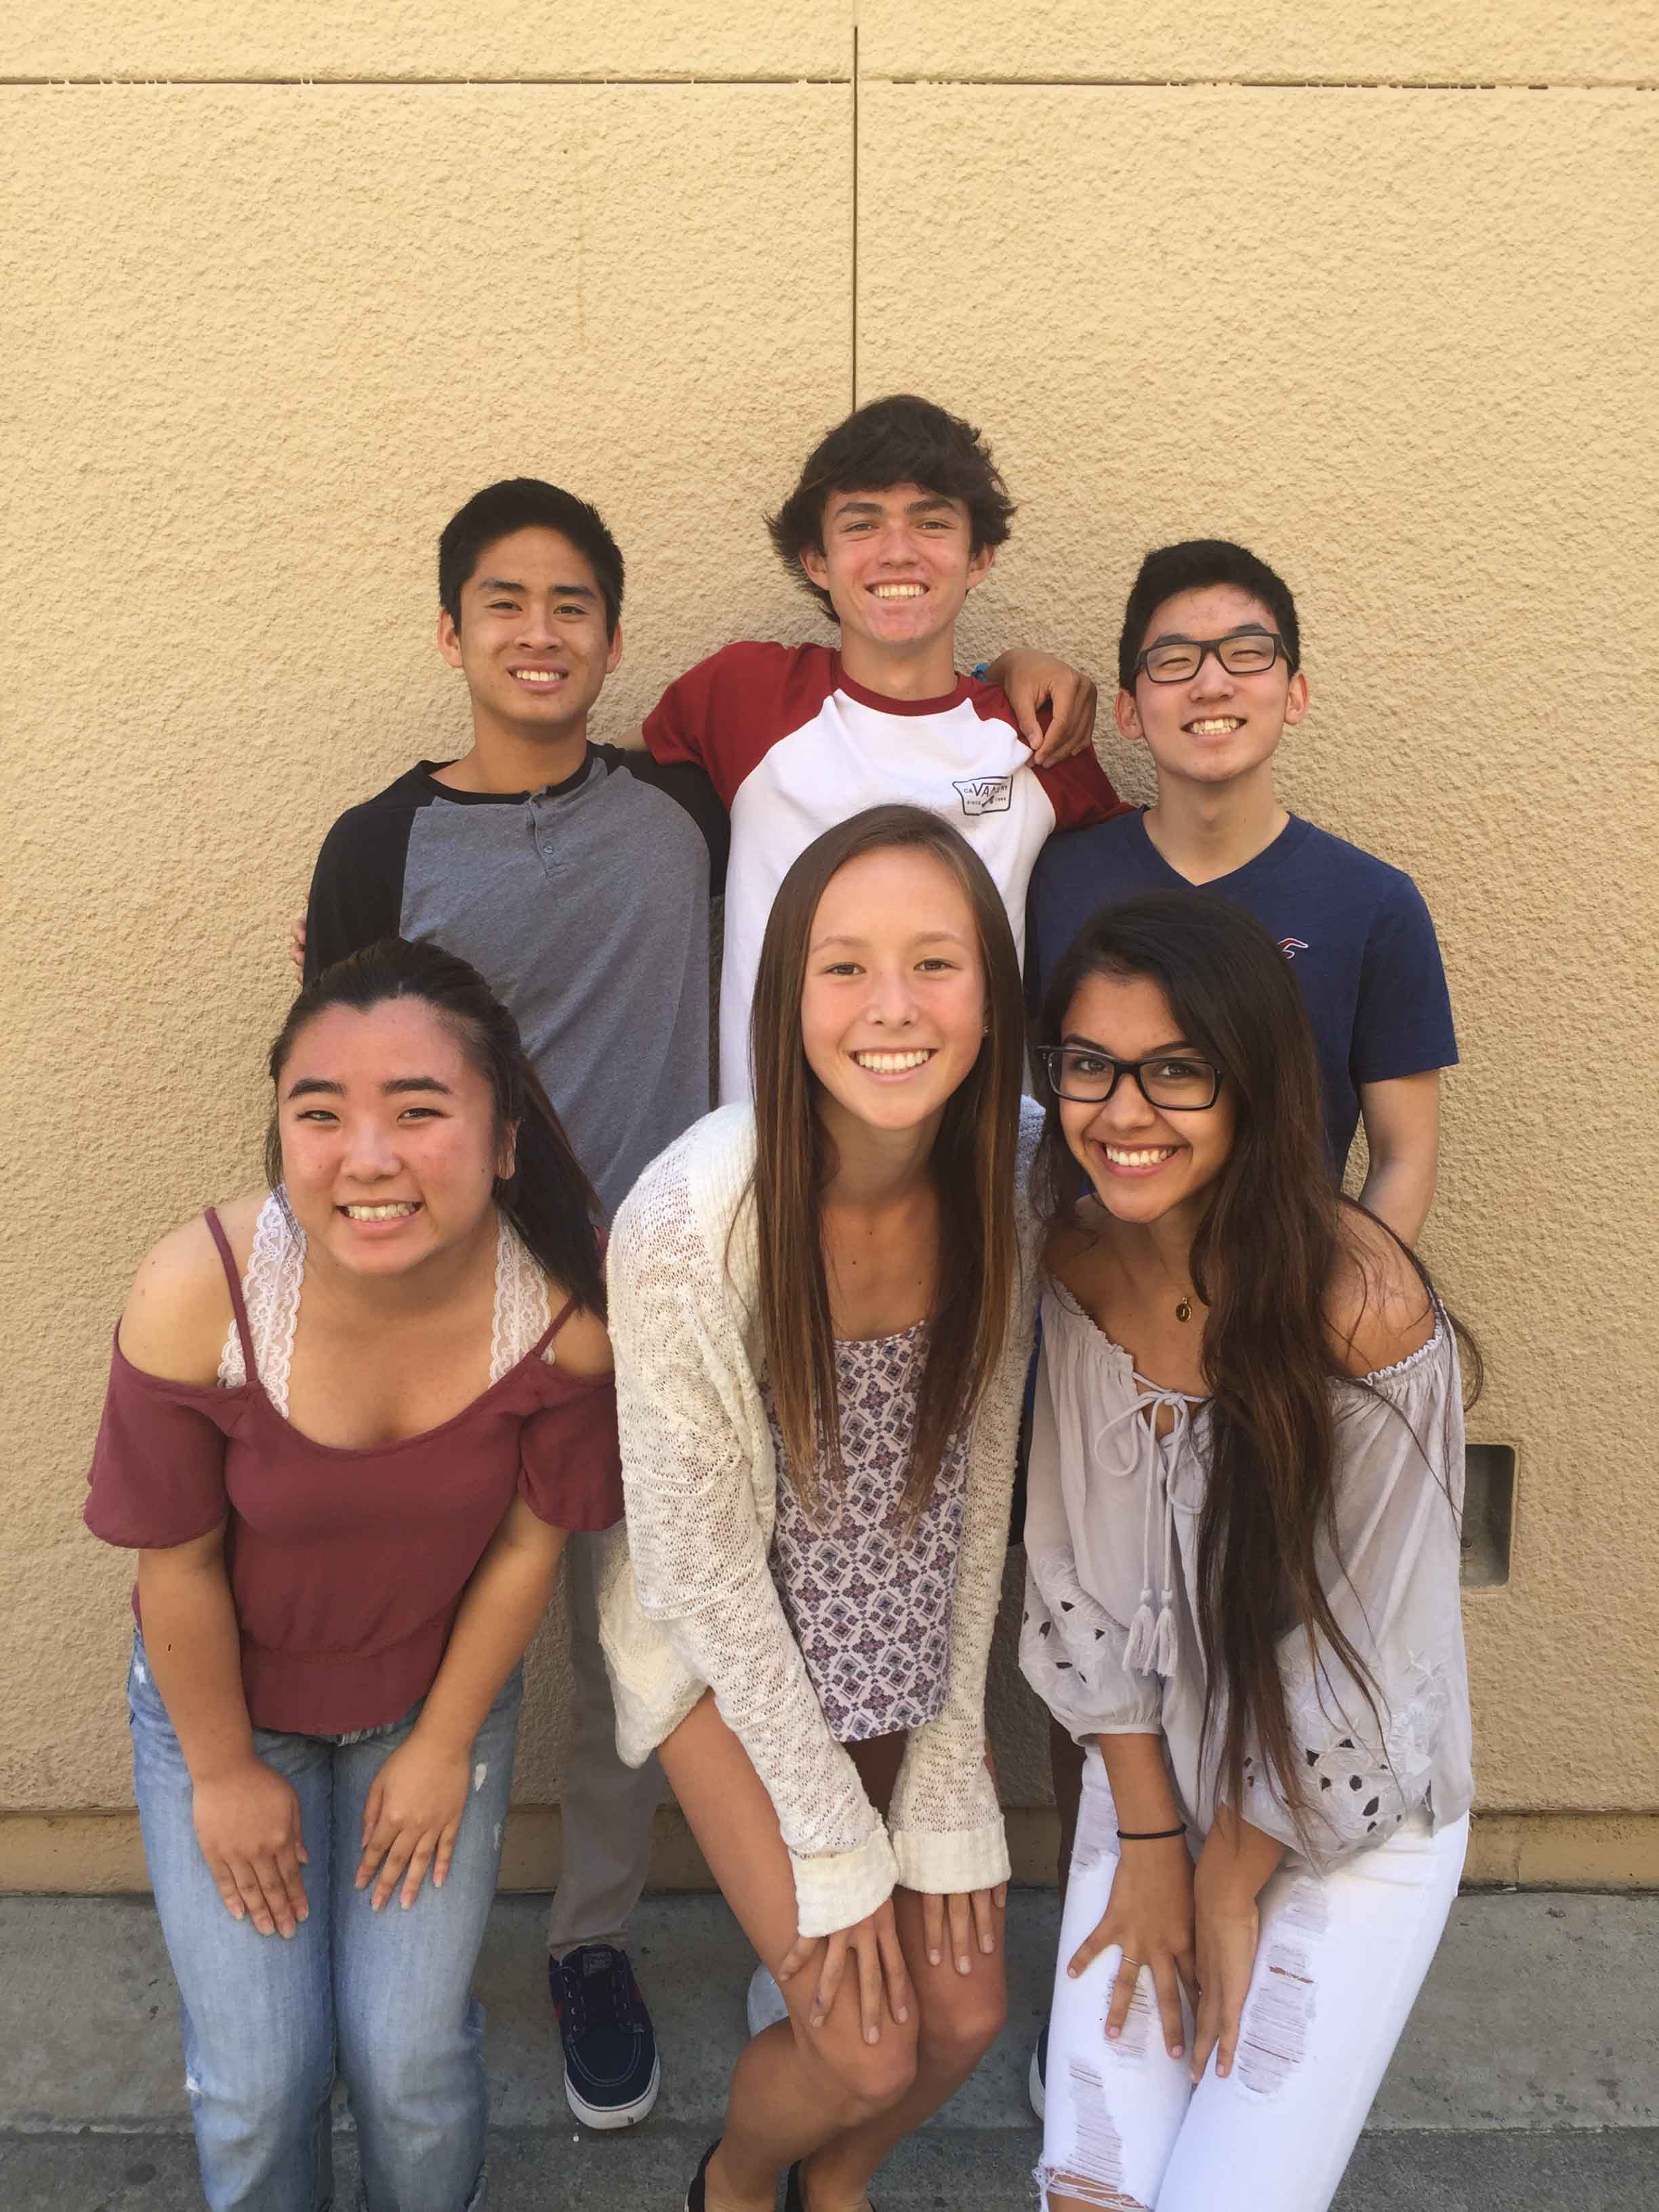 Newly elected ASB members prepare to take on their new roles for the upcoming school year.